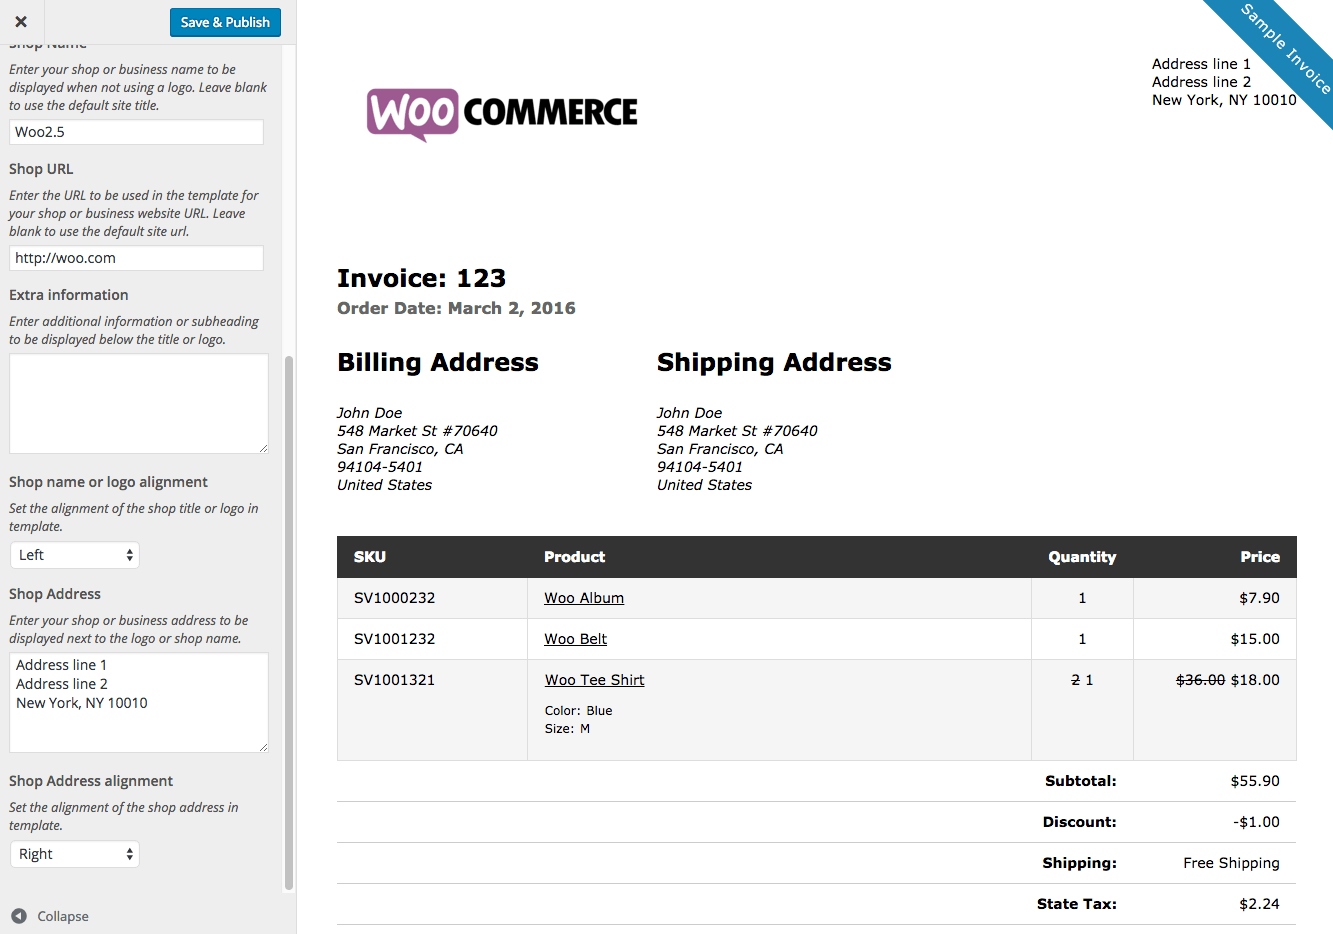 Ebitus  Prepossessing Woocommerce Print Invoices Amp Packing Lists  Woocommerce Docs With Magnificent Woocommerce Print Invoices  Packing Lists Customizer With Breathtaking To Confirm Receipt Also Ez Pass Receipt In Addition Cheese Cake Receipt And How Long To Keep Business Receipts As Well As Business Card And Receipt Scanner Additionally Repair Receipt Template From Docswoocommercecom With Ebitus  Magnificent Woocommerce Print Invoices Amp Packing Lists  Woocommerce Docs With Breathtaking Woocommerce Print Invoices  Packing Lists Customizer And Prepossessing To Confirm Receipt Also Ez Pass Receipt In Addition Cheese Cake Receipt From Docswoocommercecom